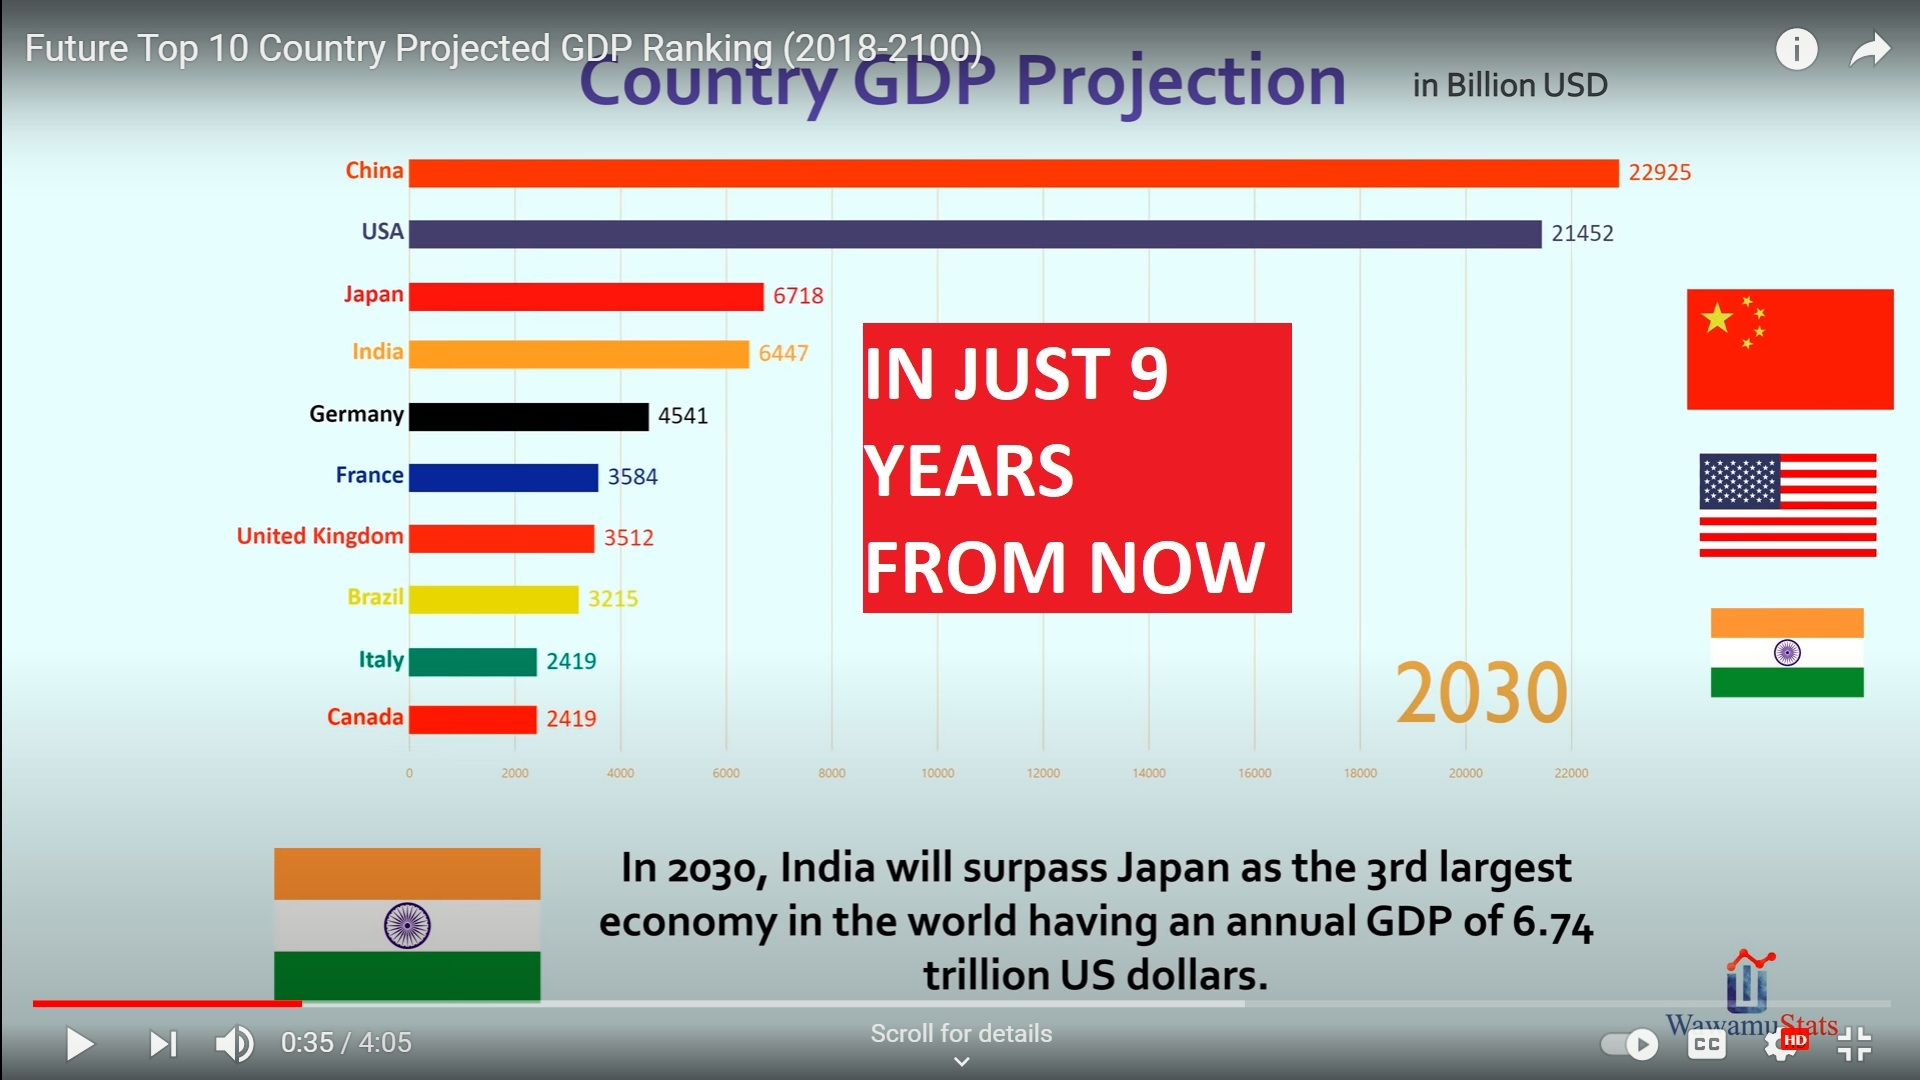 INDIA IS NUMBER 3 IN 20121 IN GDP